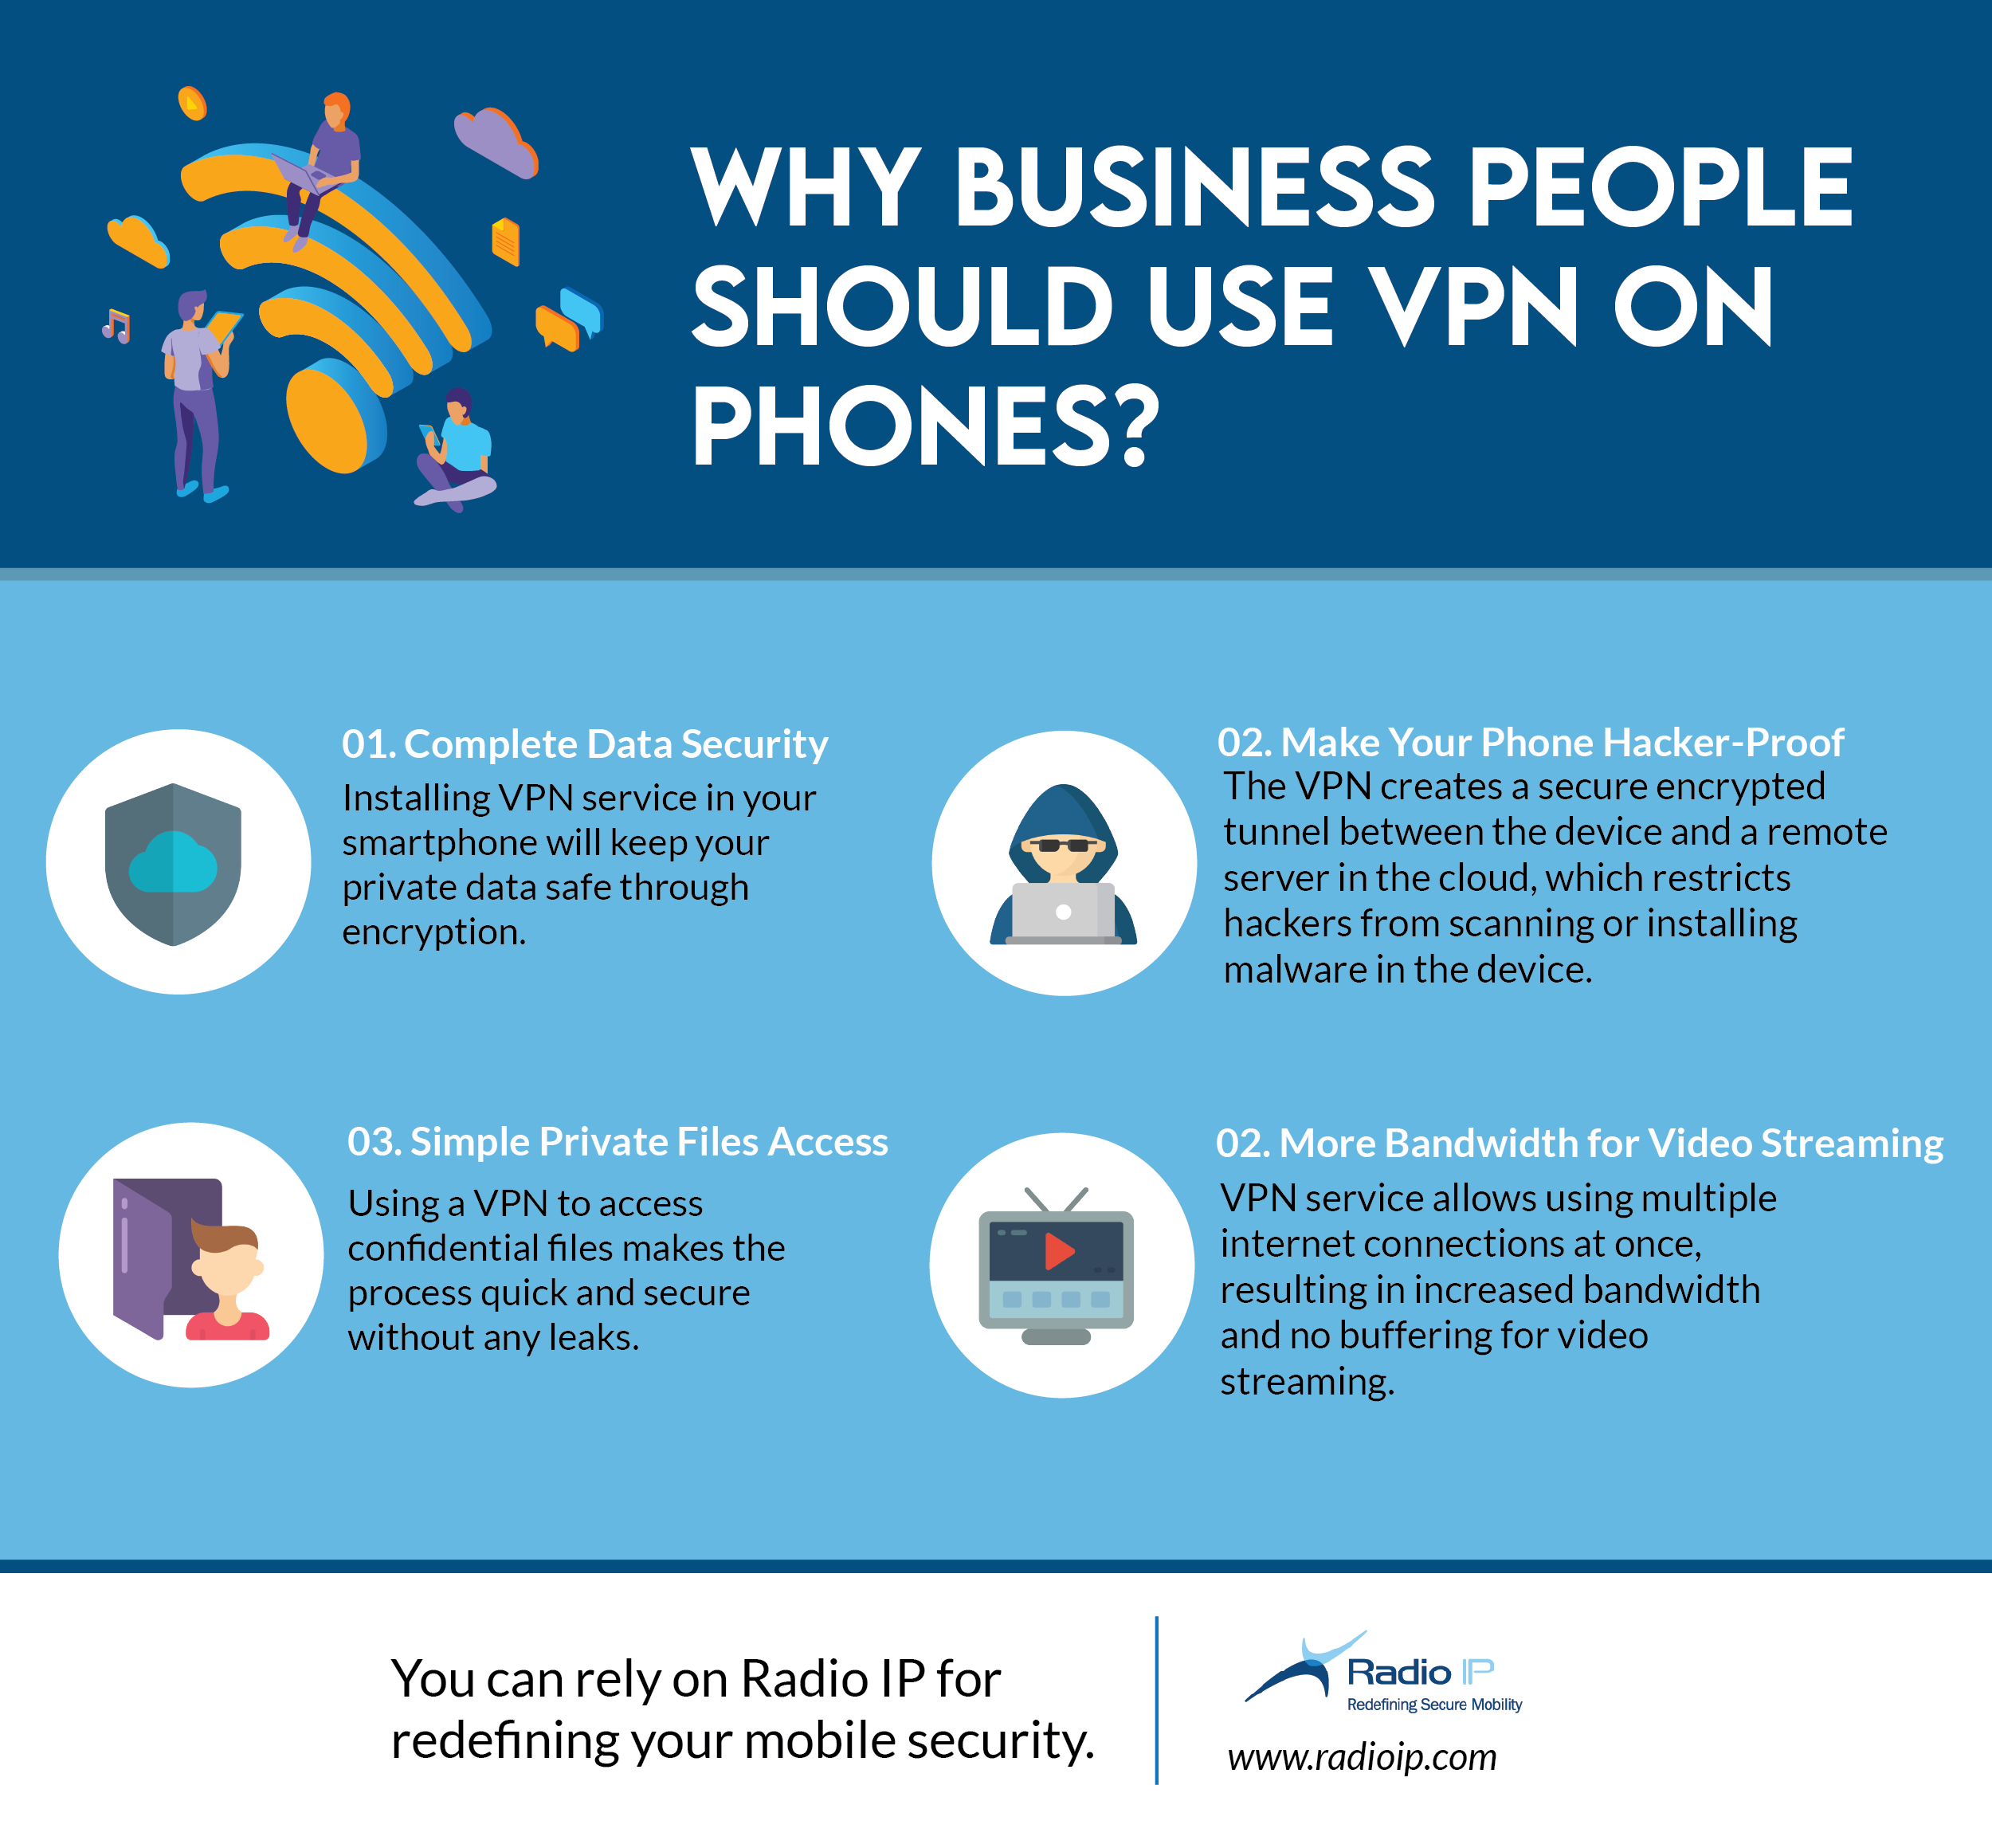 Business People Should Use VPN on Phones